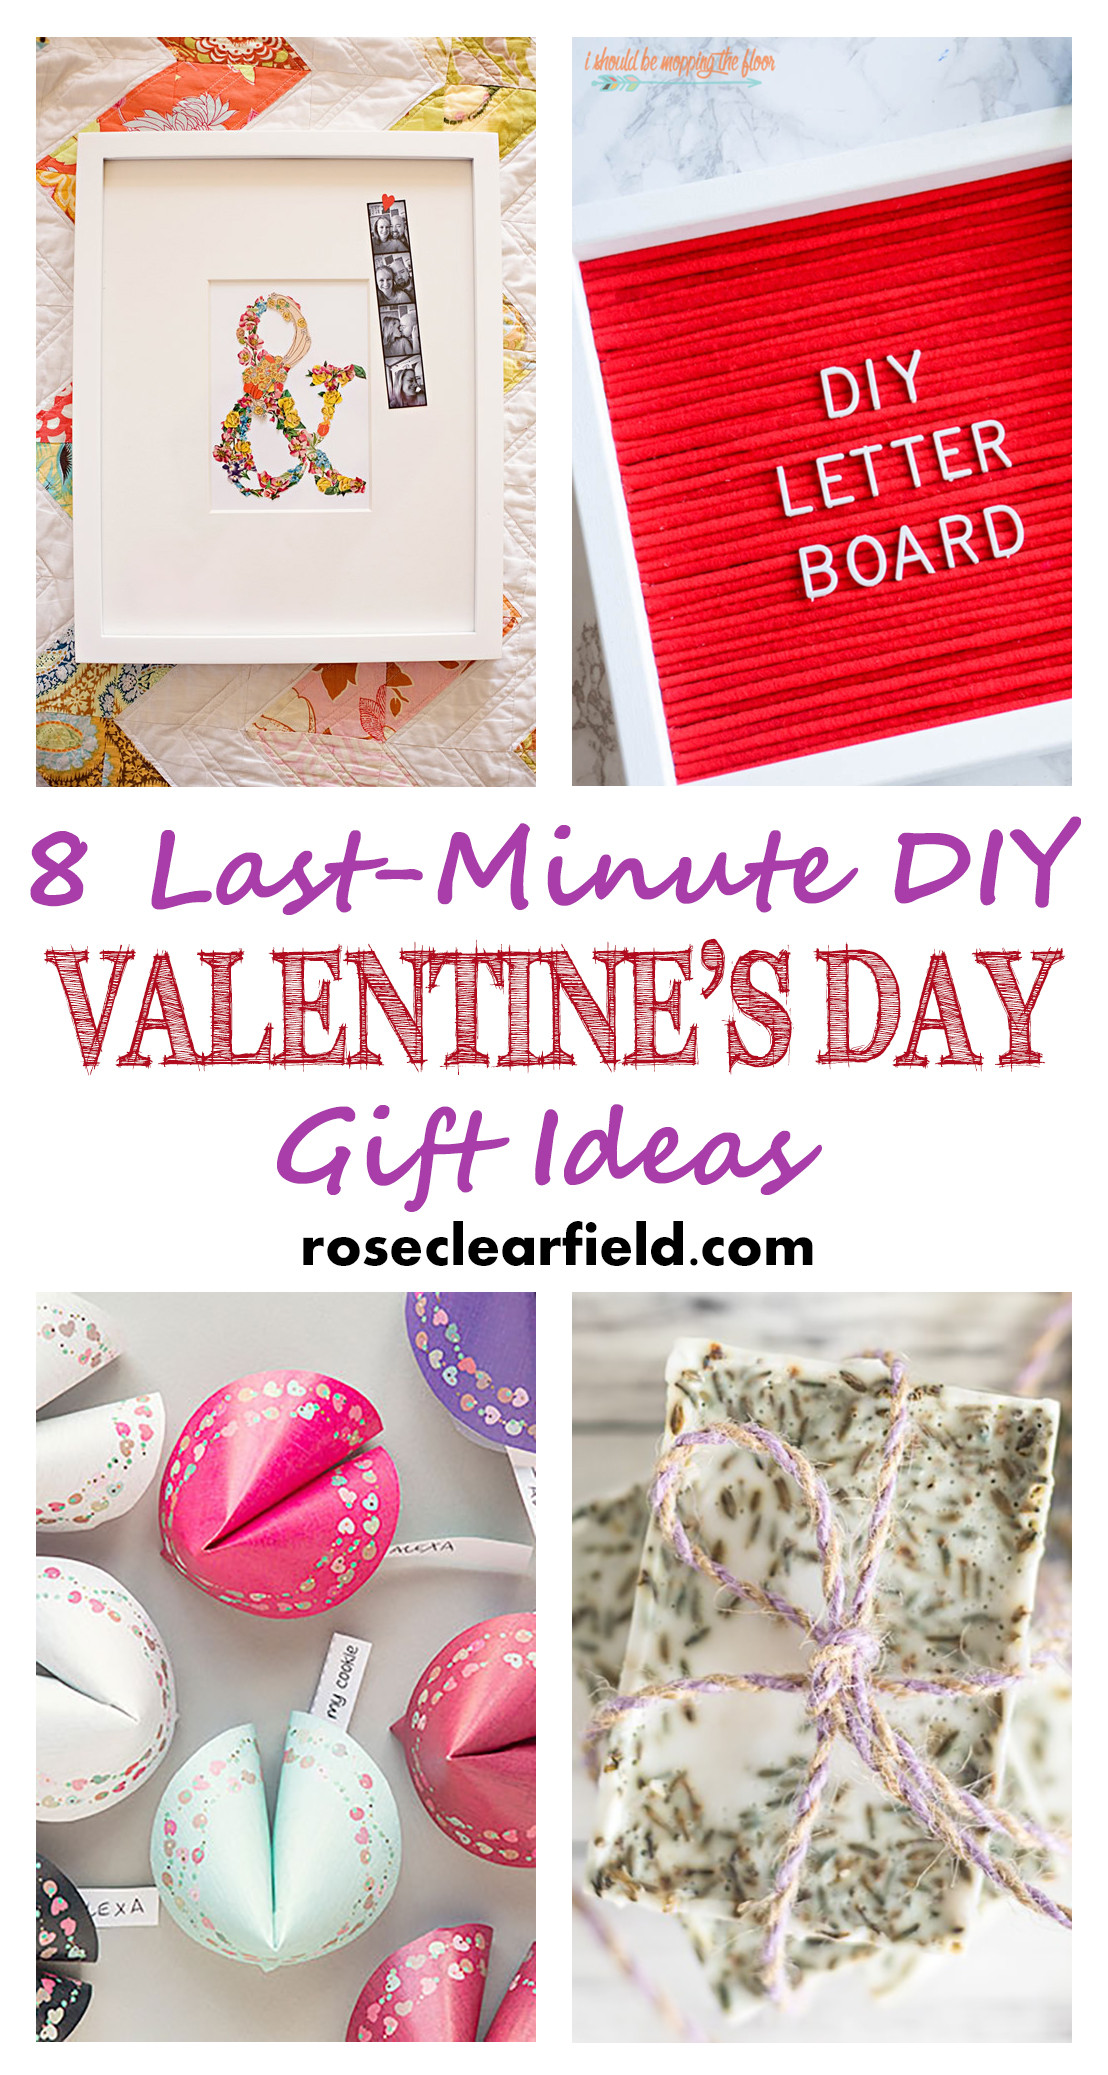 Valentines Day Gift Ideas  Last Minute DIY Valentine s Day Gift Ideas • Rose Clearfield